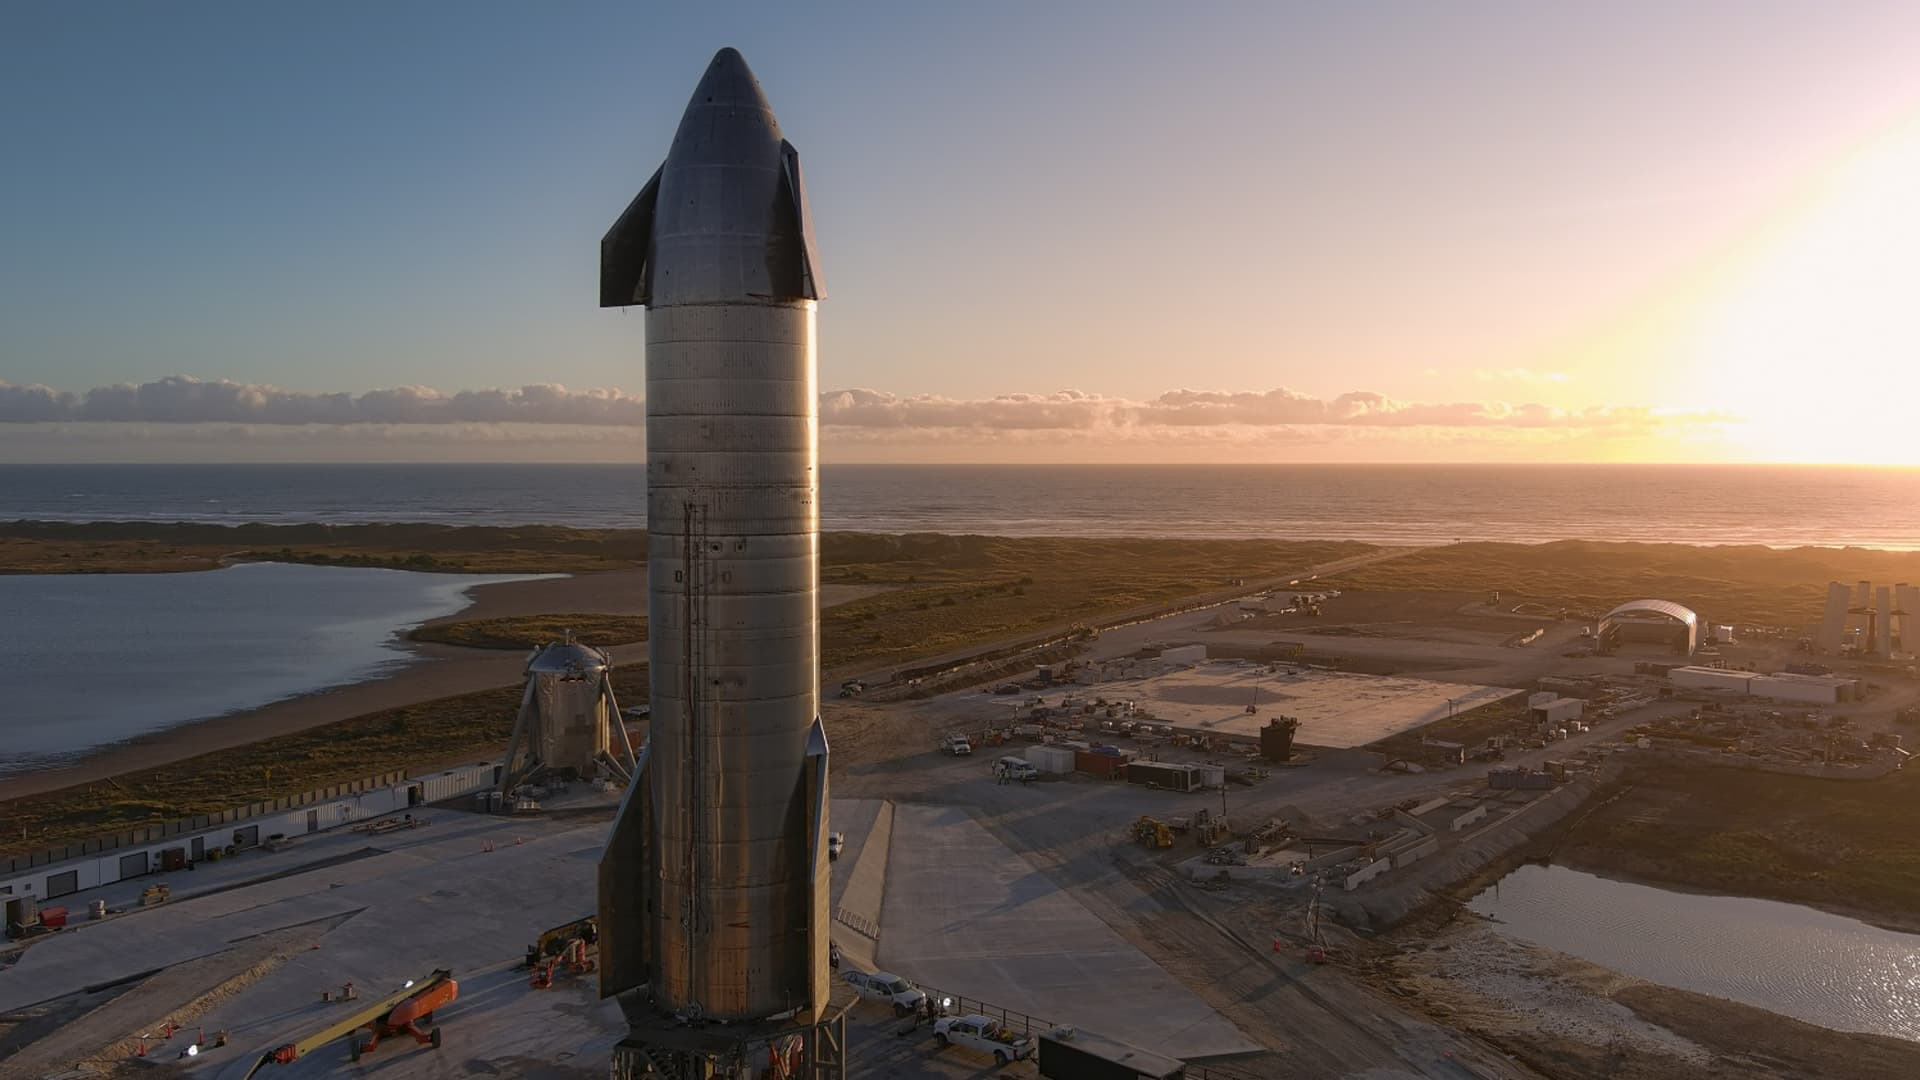 Starship prototype rocket SN8 stands on the launchpad at SpaceX's facility in Boca Chica, Texas on Nov. 10, 2020.